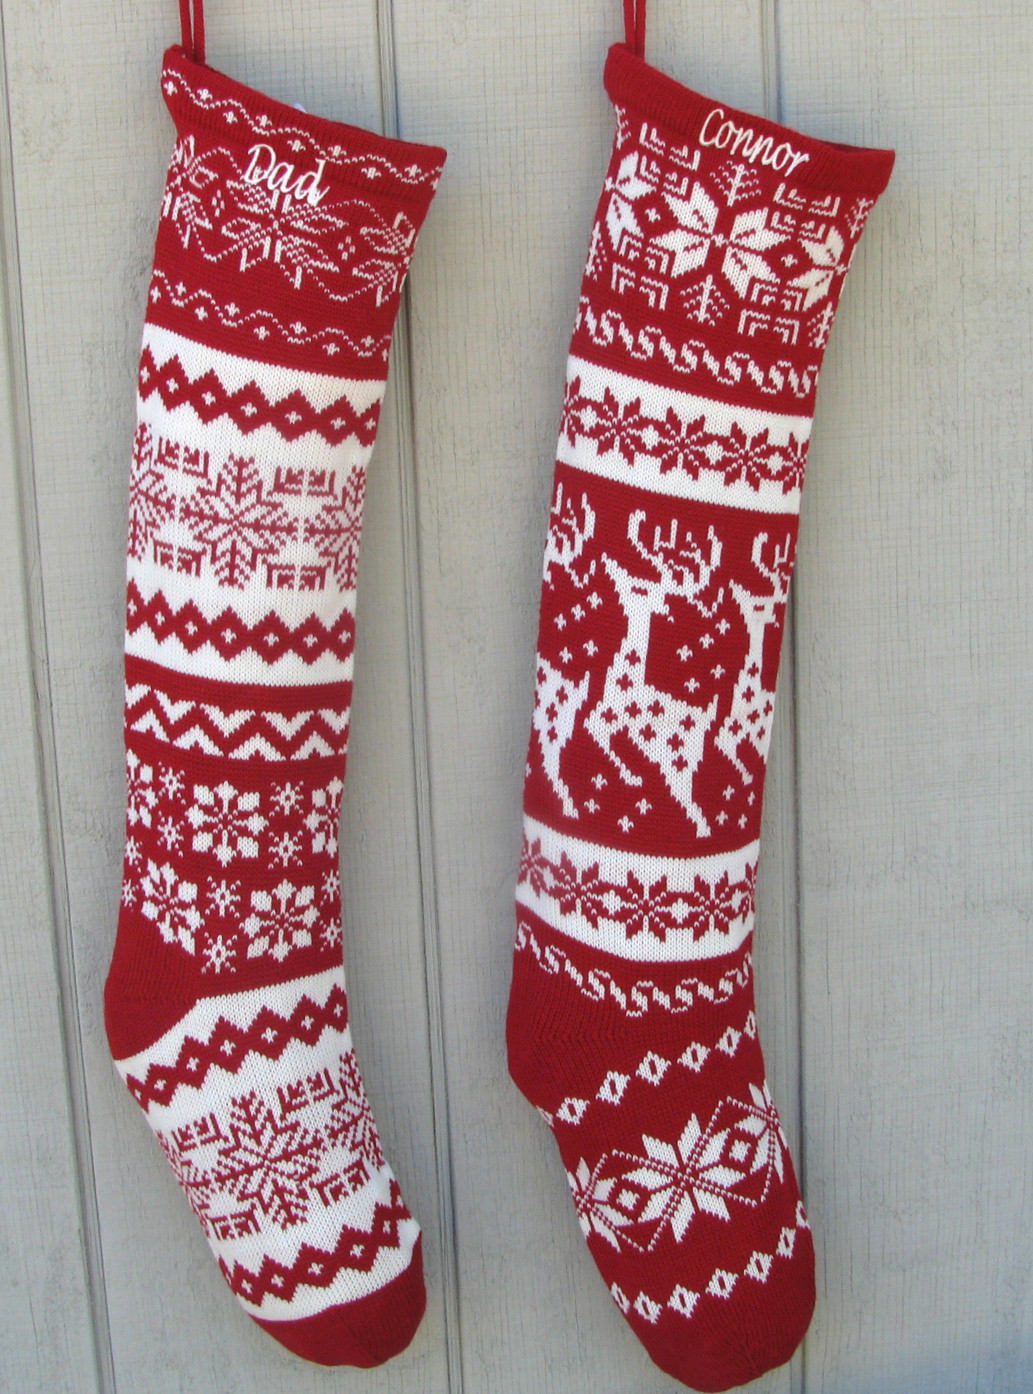 Christmas Knitting Patterns Inspirational Knitted Christmas Stockings Red White Of Contemporary 44 Pics Christmas Knitting Patterns